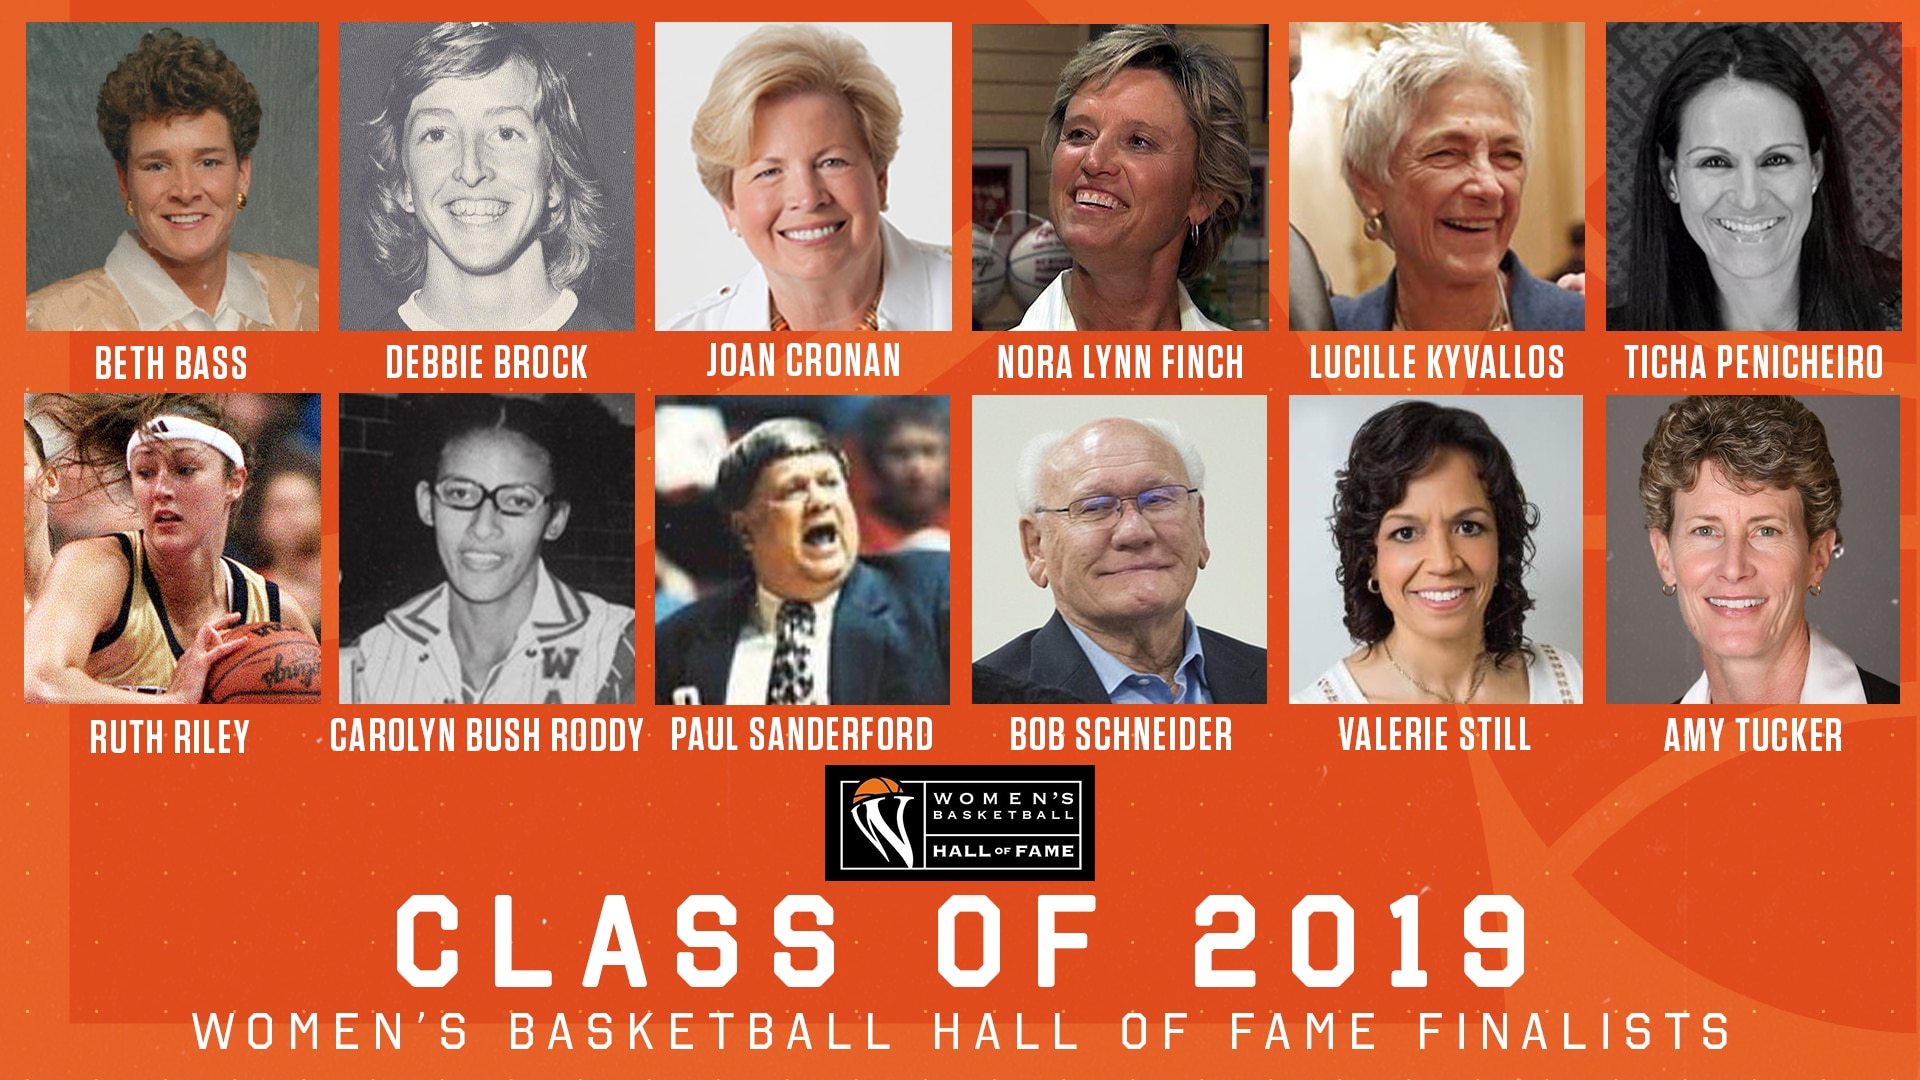 The Women's Basketball Hall of Fame announced its 12 finalists for consideration for induction into its Hall of Fame